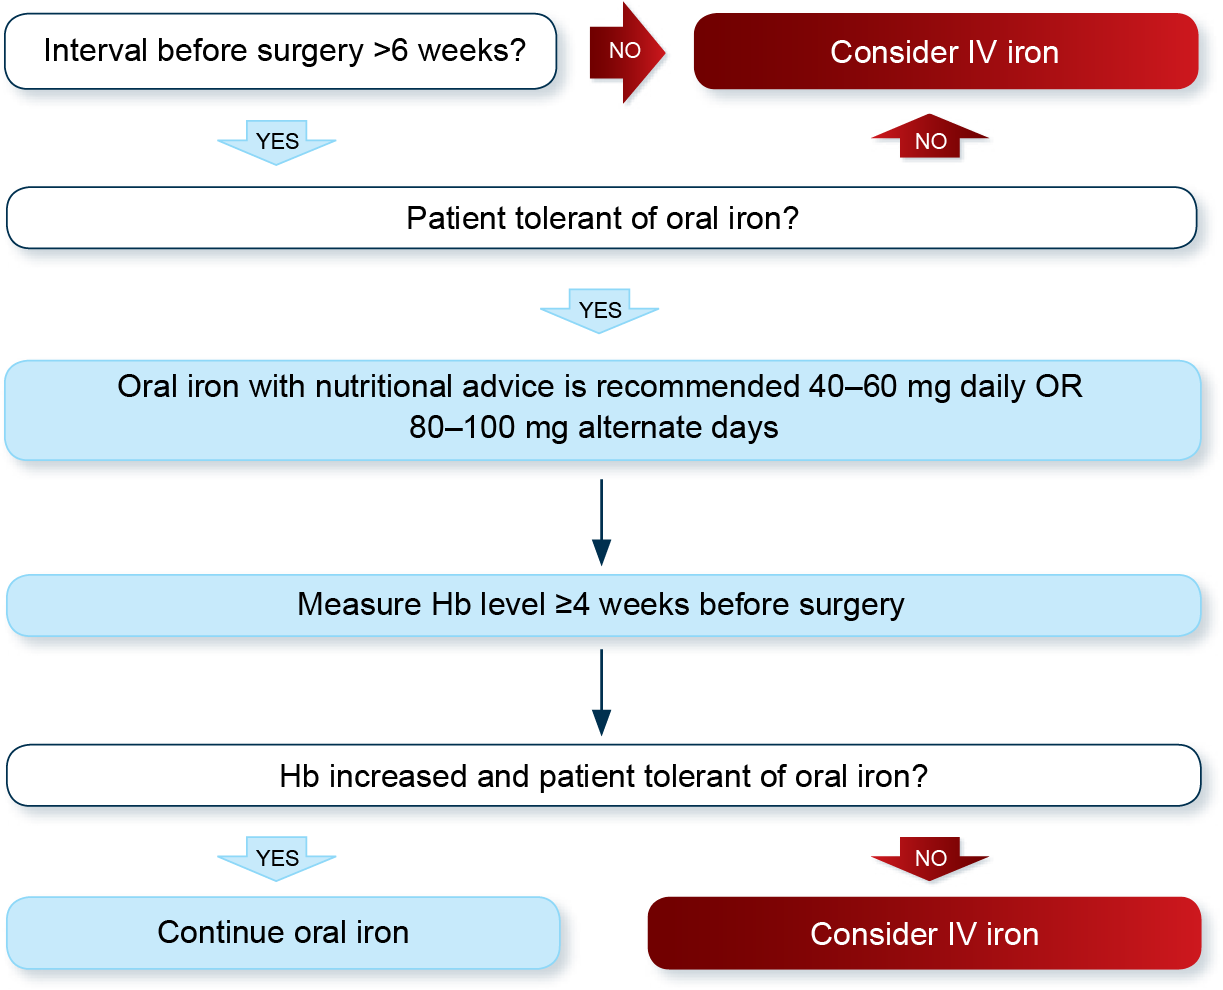 Flowchart depicting course of deciding to administer IV iron to a patient or continue with oral iron